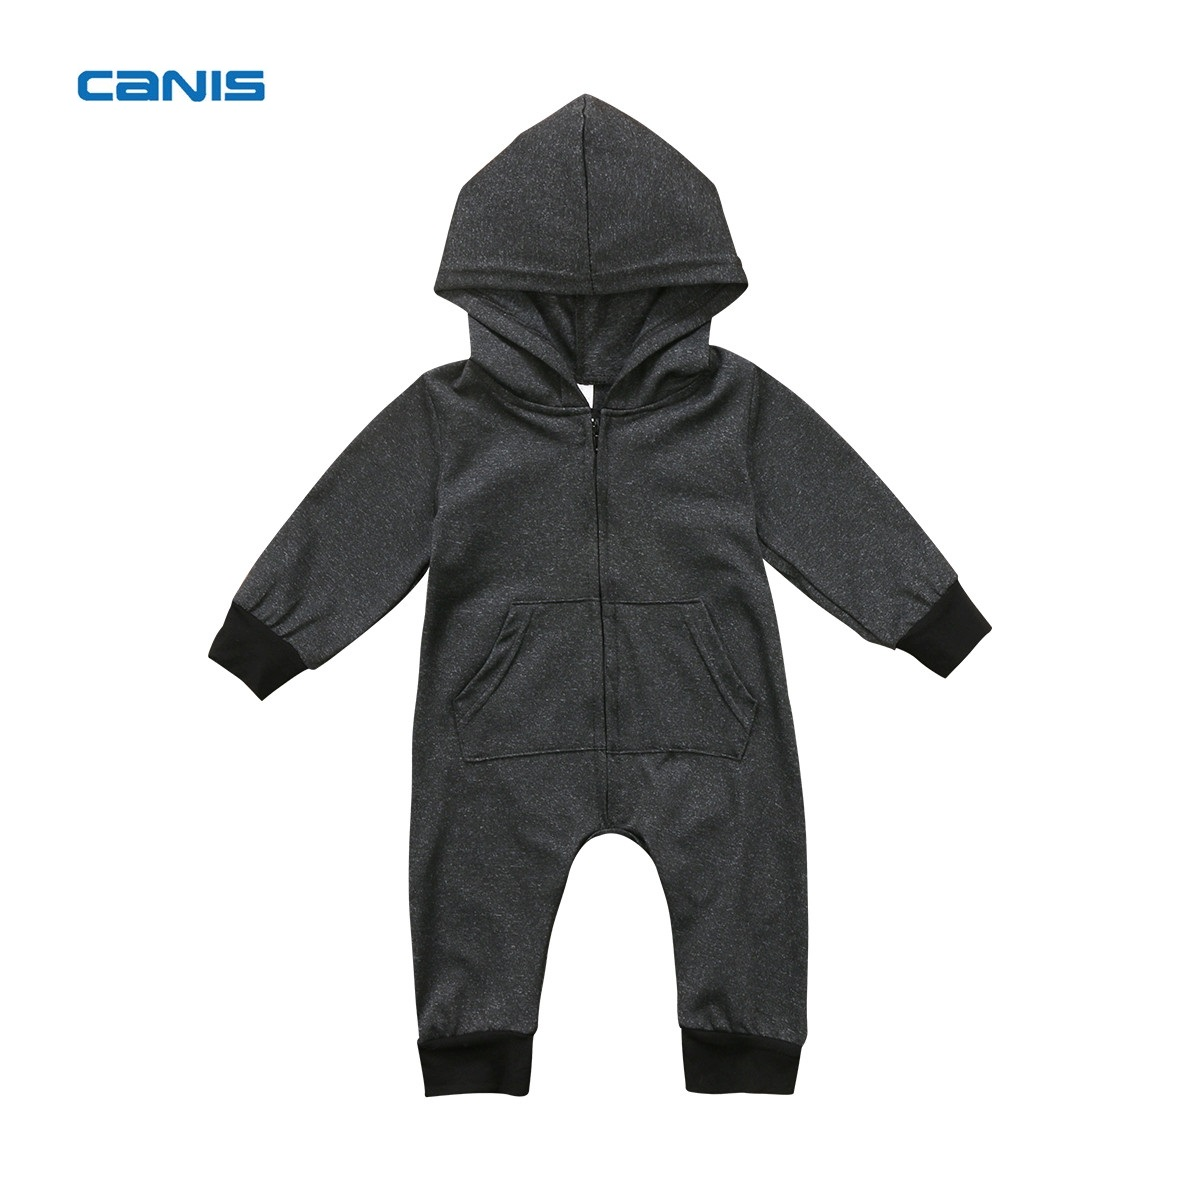 2017 Brand New Toddler Newborn Kid Baby Boy Warm Infant Romper Jumpsuit Hooded Clothes Zipper Sweater Outfit Autumn Warm Clothes puseky 2017 infant romper baby boys girls jumpsuit newborn bebe clothing hooded toddler baby clothes cute panda romper costumes